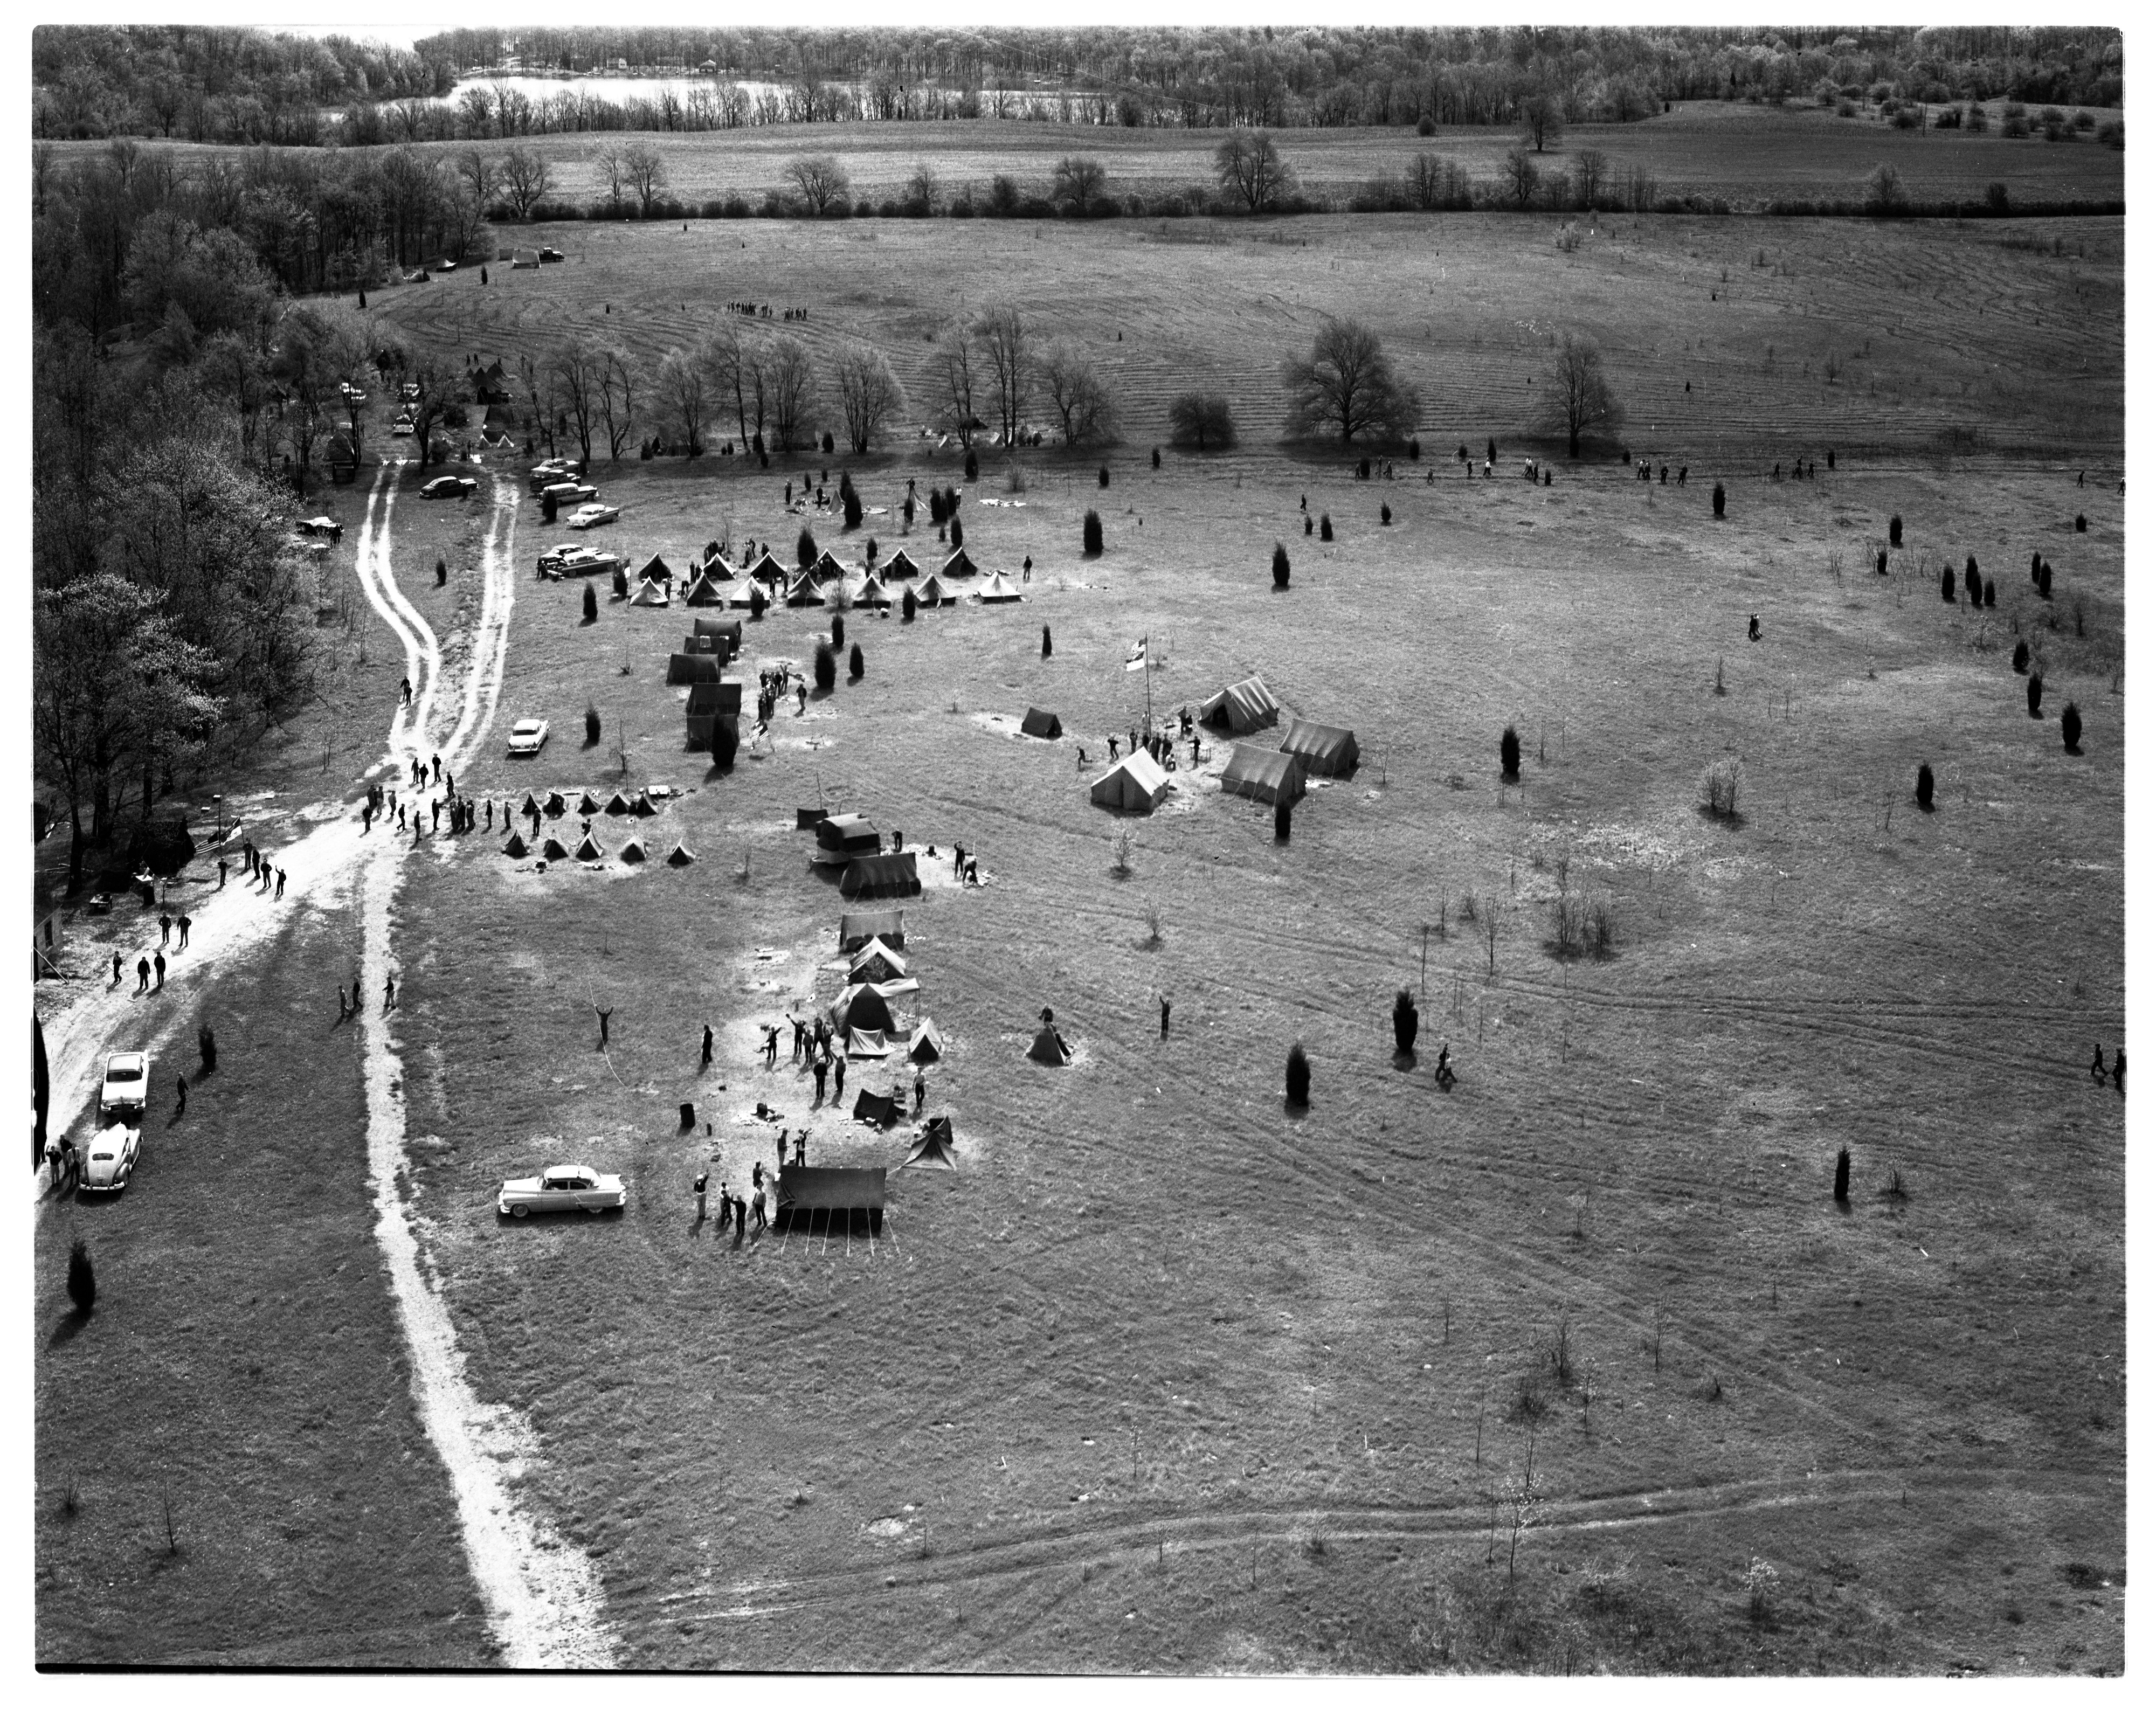 Aerial Photograph of the Boy Scout Camp at Bruin Lake, May 1956 image